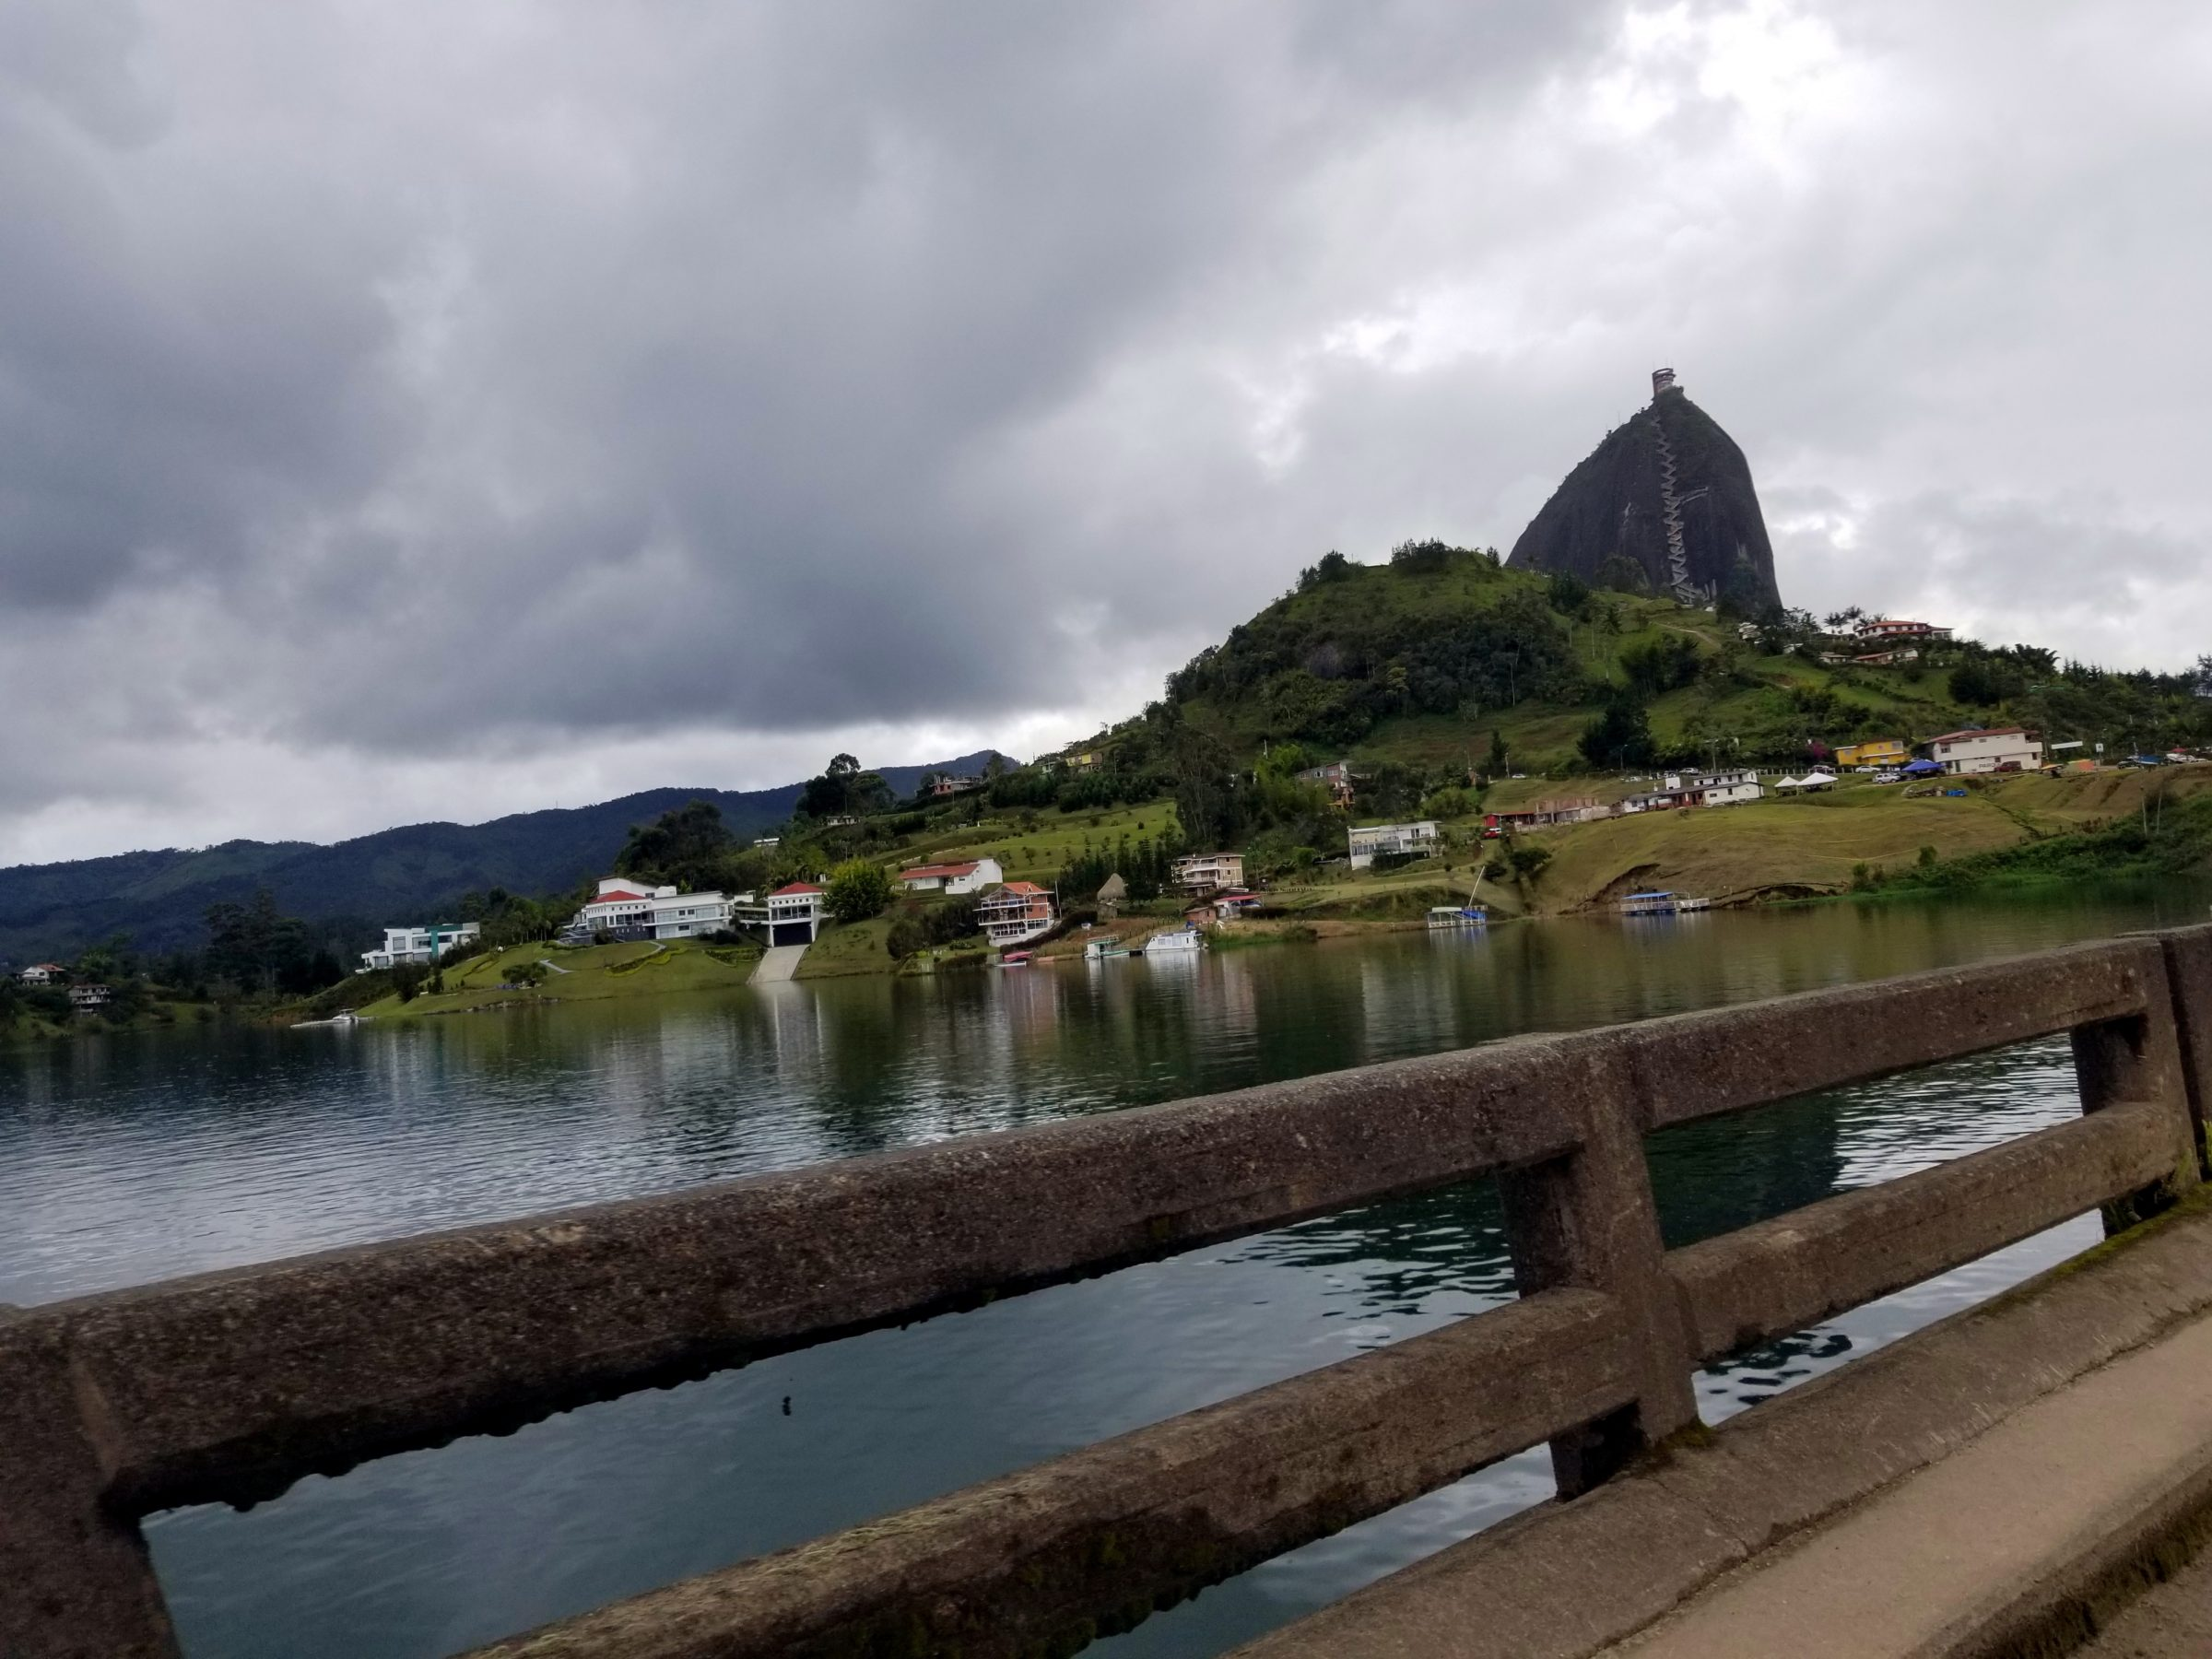 Goodbye Guatape! Onward to Salento ...